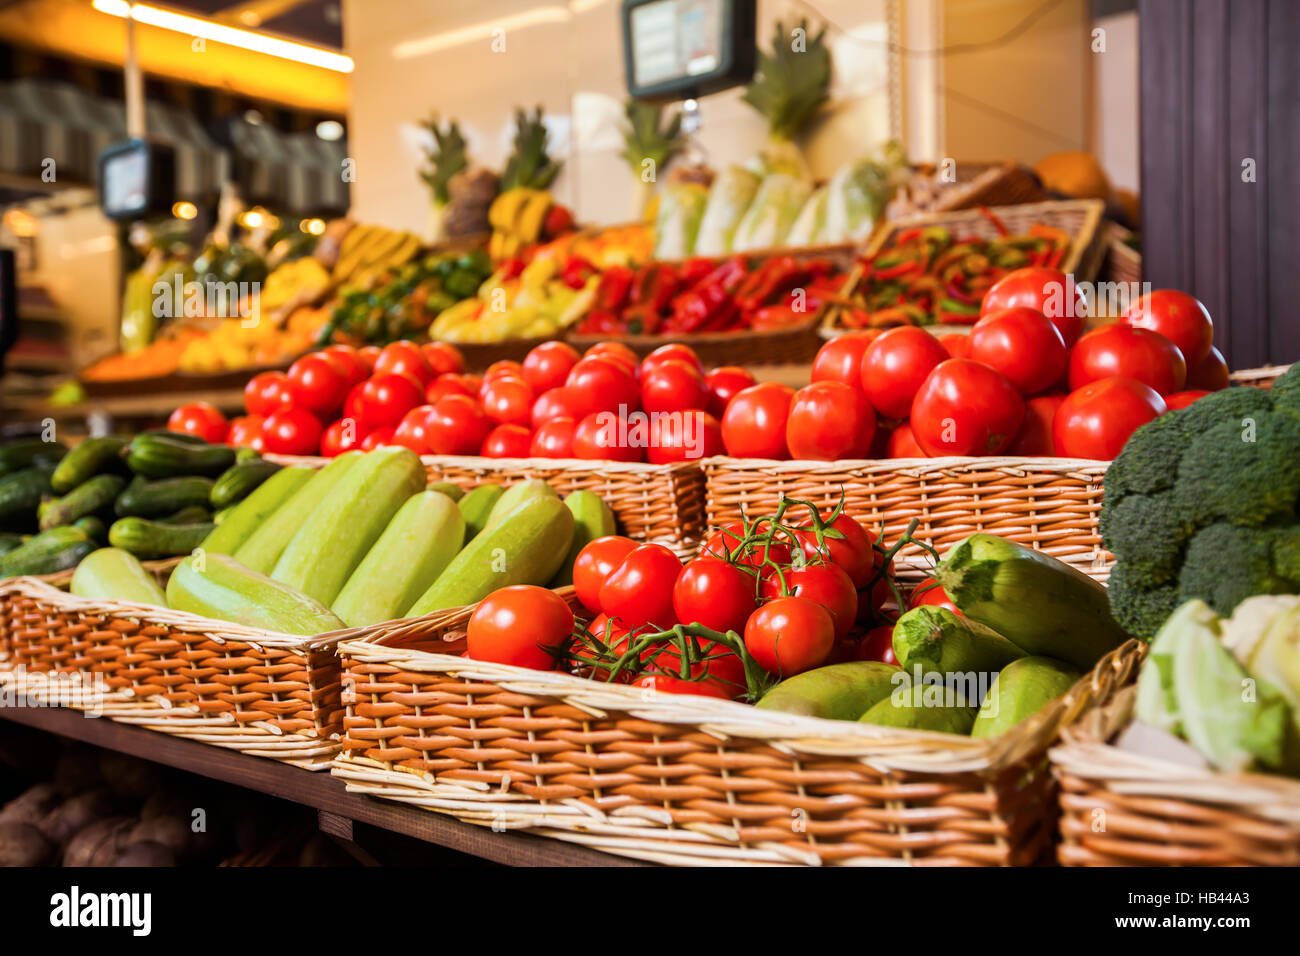 Greengrocery with fresh fruits and vegetables. - Stock Image